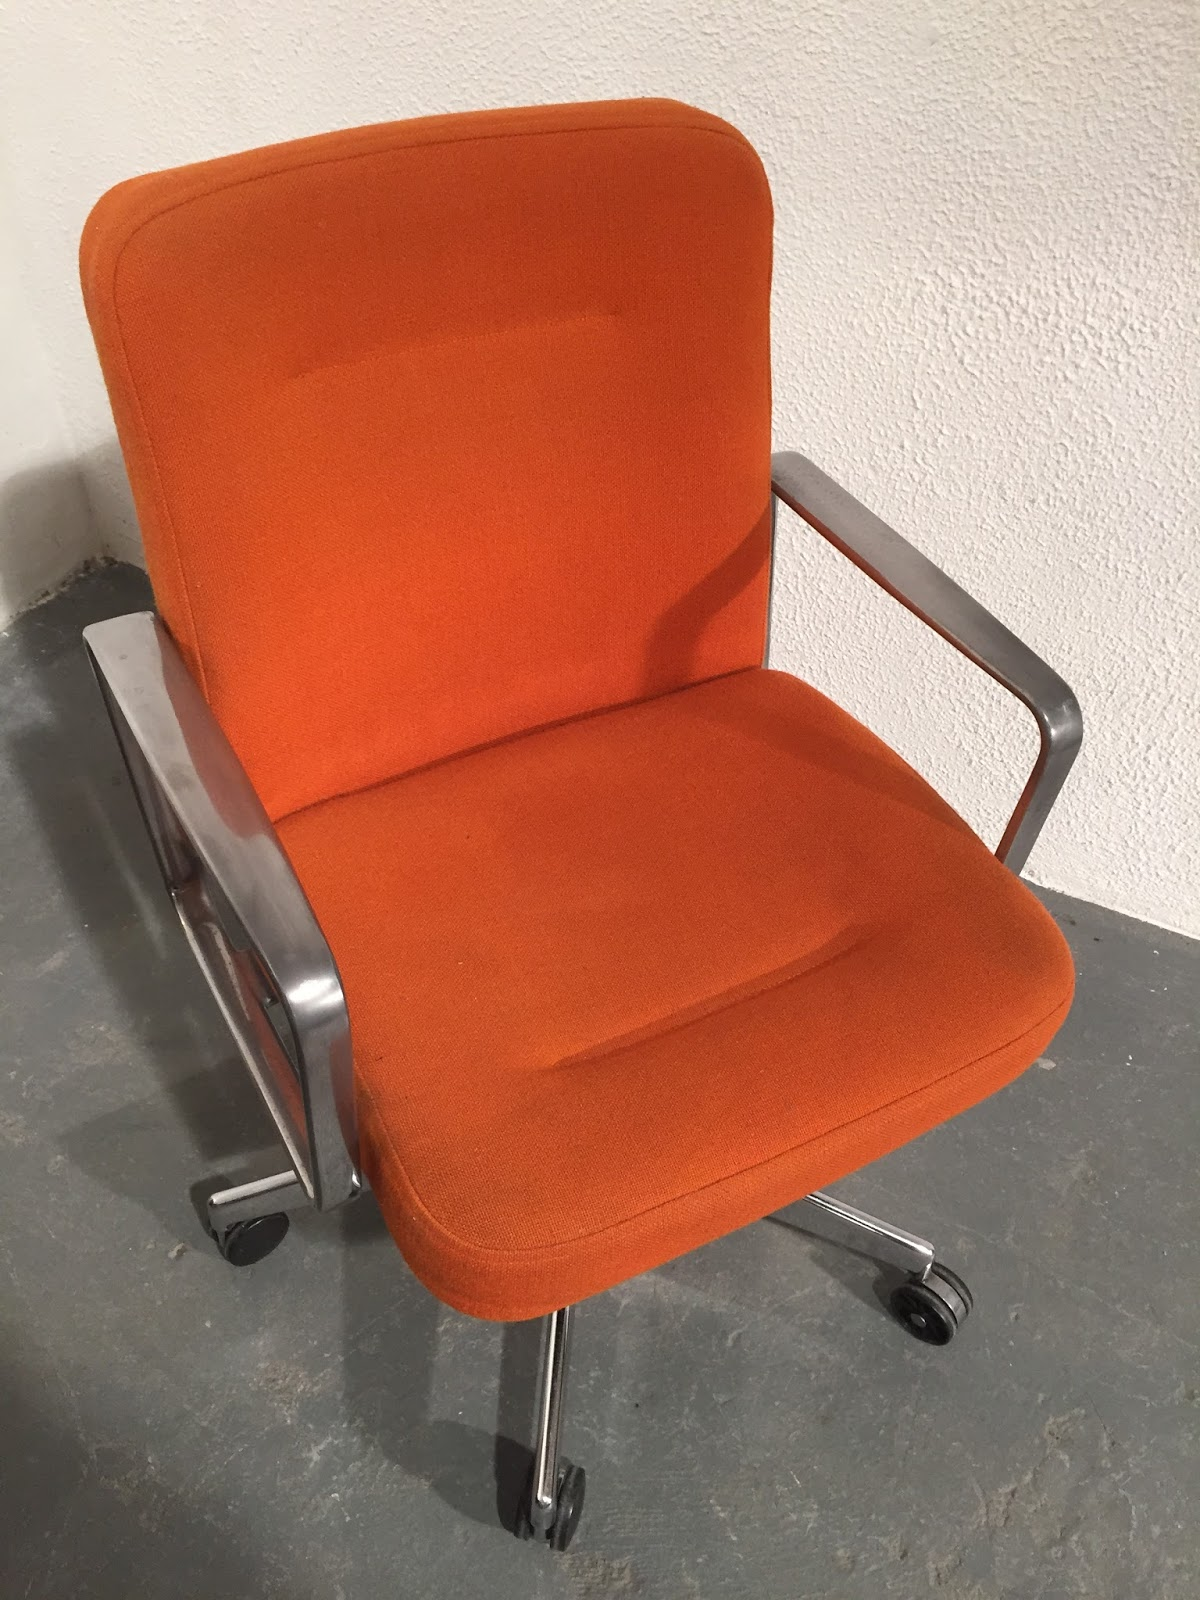 swivel chair ireland most comfortable executive office vintage furniture